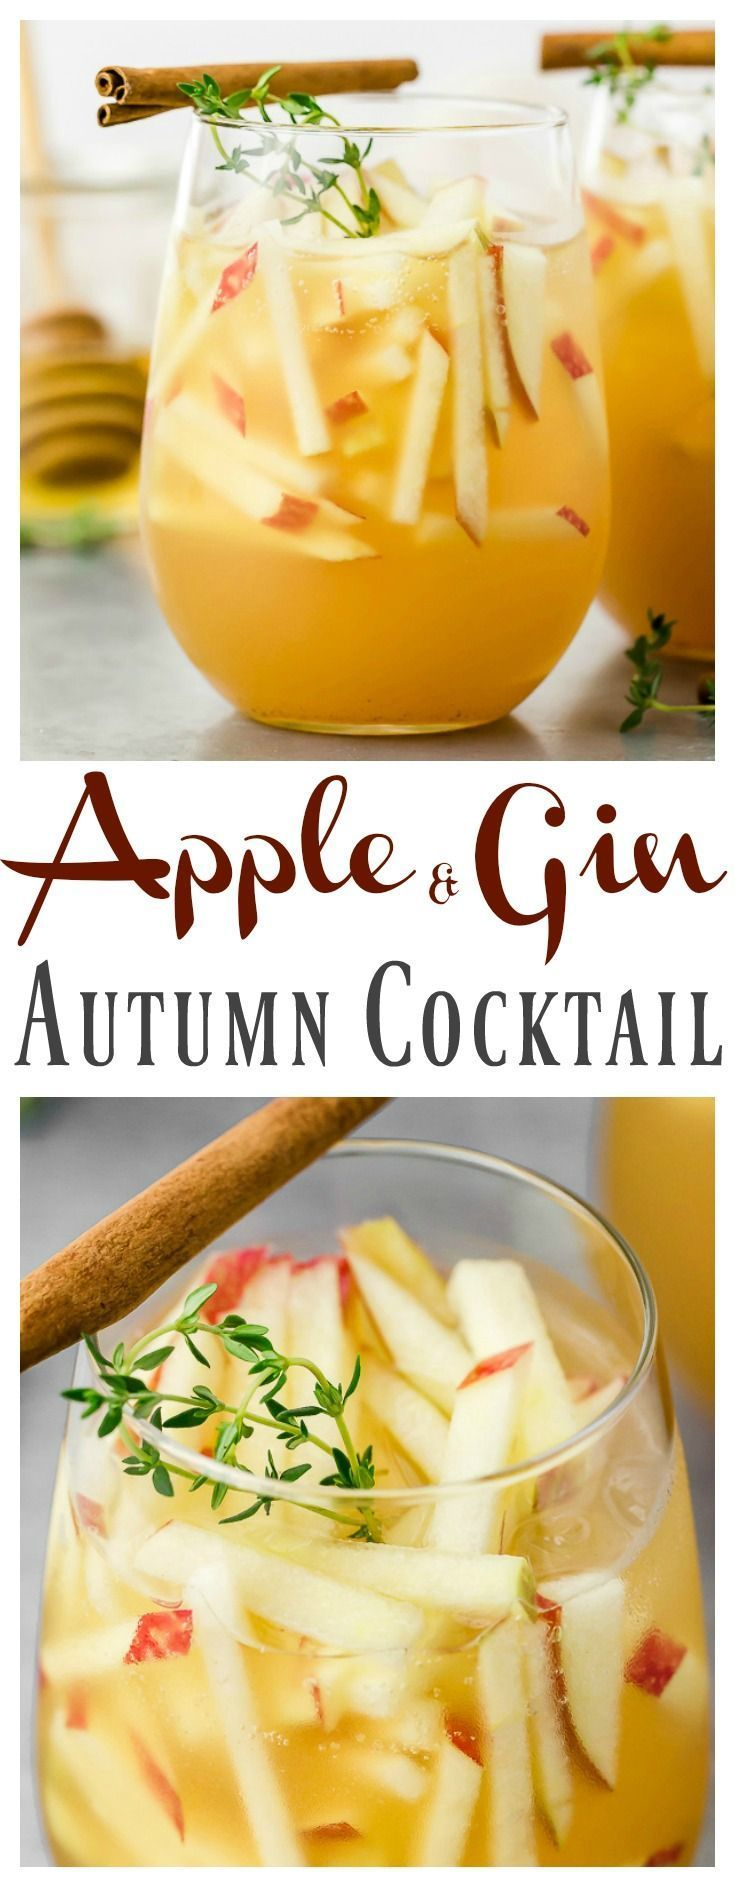 Apple & Gin Autumn Cocktail - No Spoon Necessary